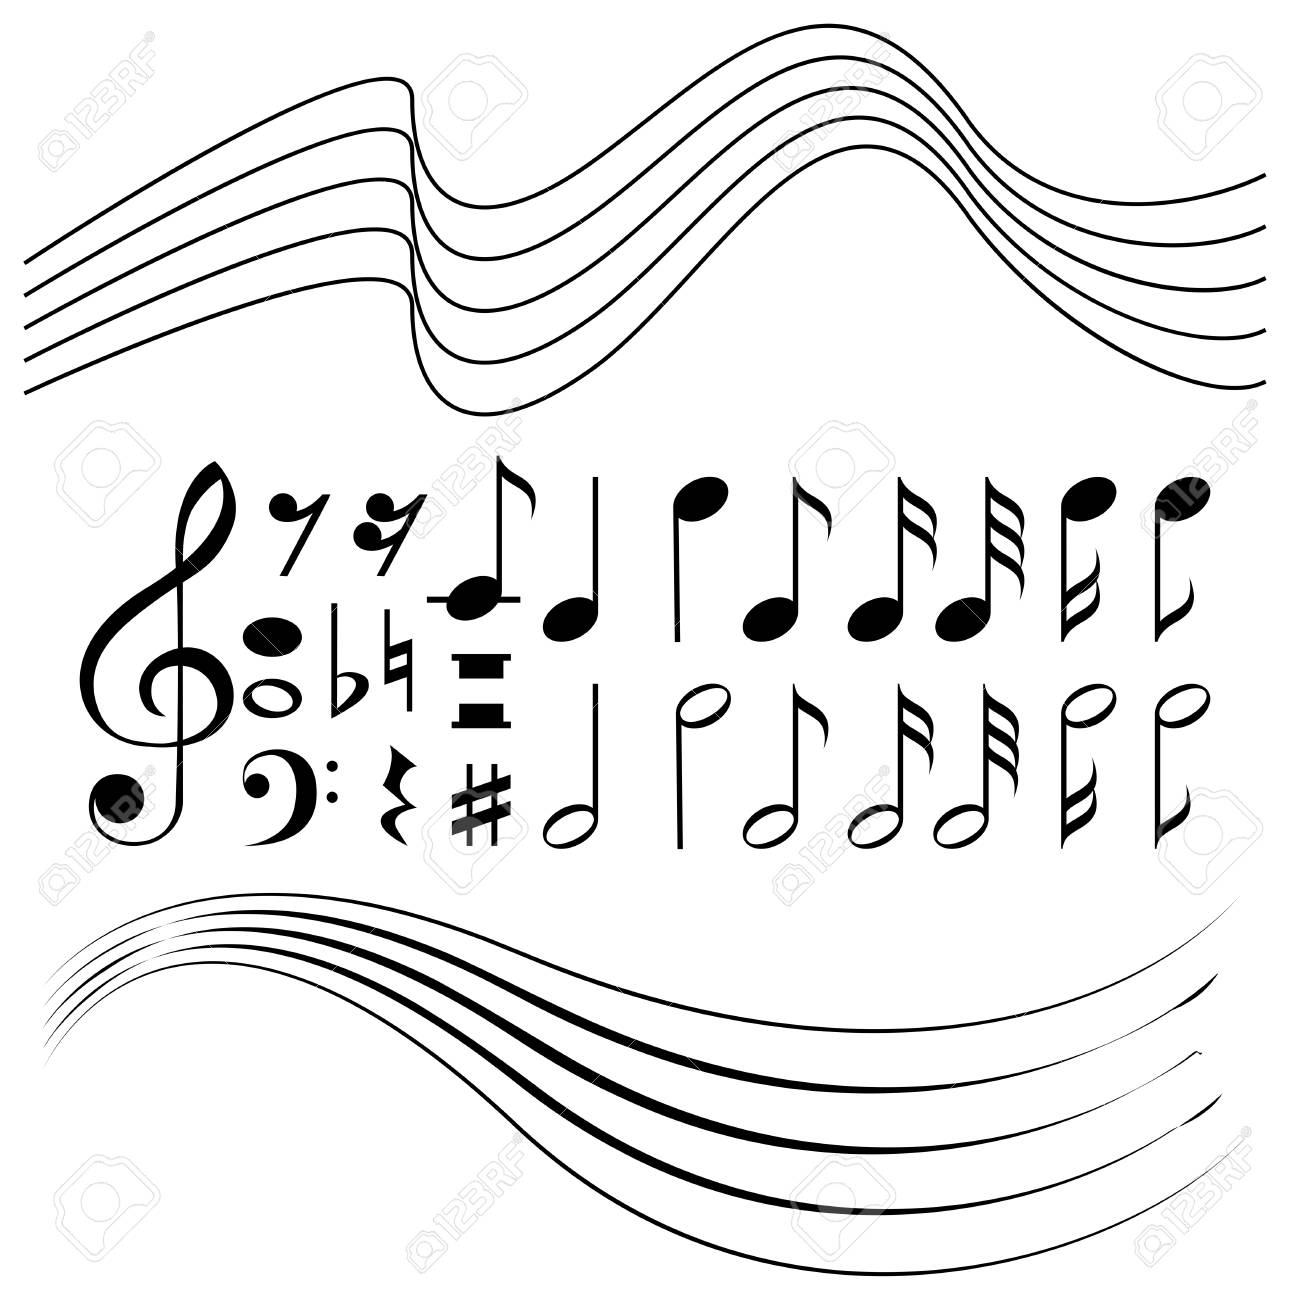 Different symbols of music notes and line paper illustration different symbols of music notes and line paper illustration stock vector 86996841 buycottarizona Choice Image